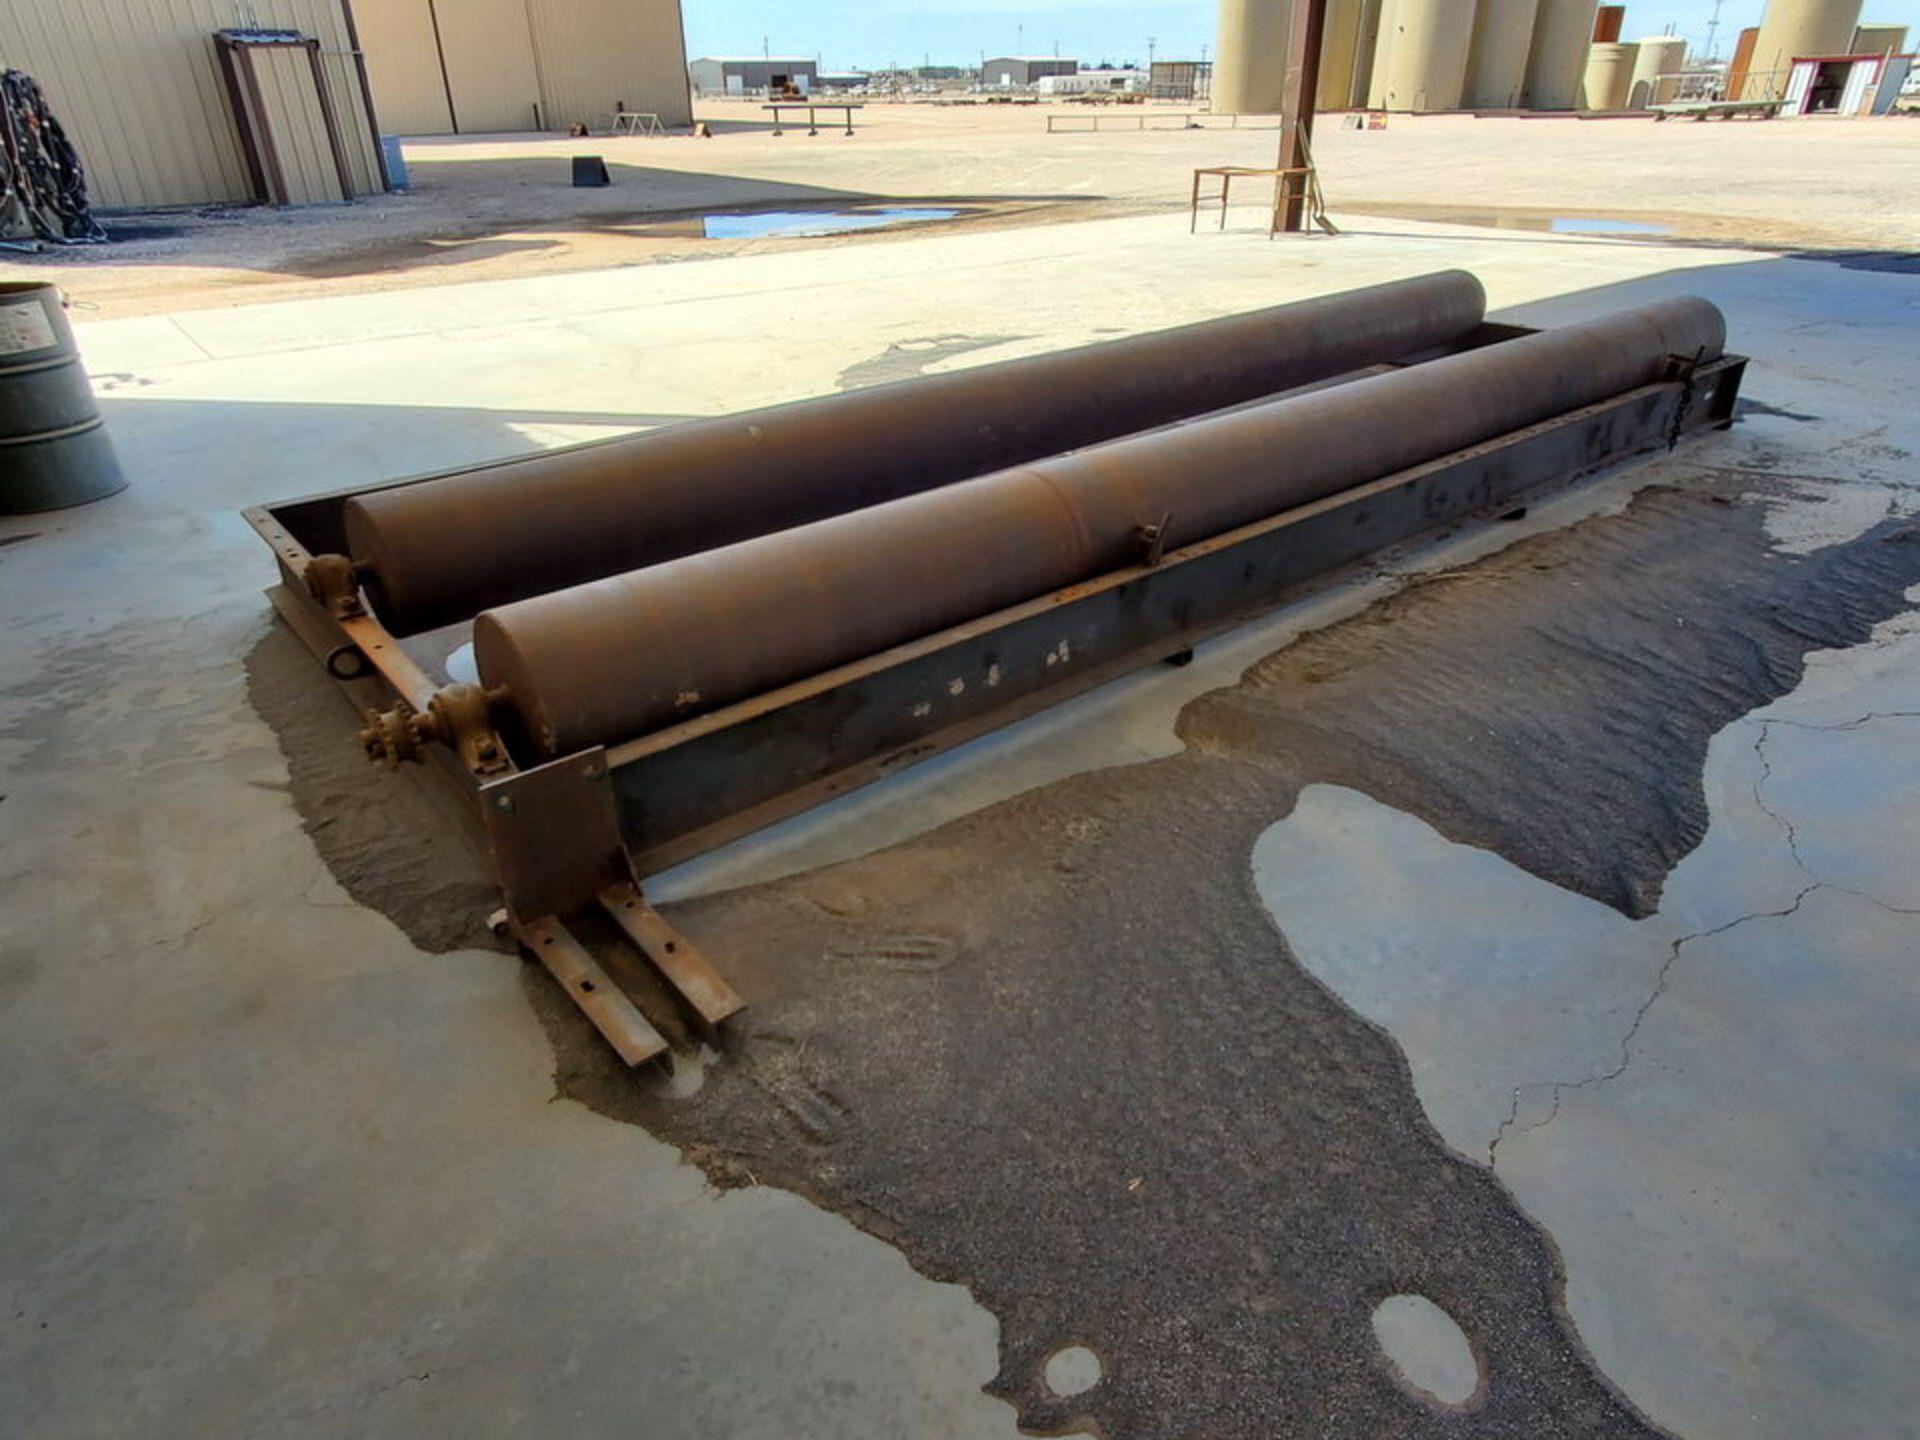 """Turn Roll 8' x 20'6"""", 16"""" O.D. Rolls, 1' Base; Overall Dims: 9'8""""W - Image 4 of 8"""